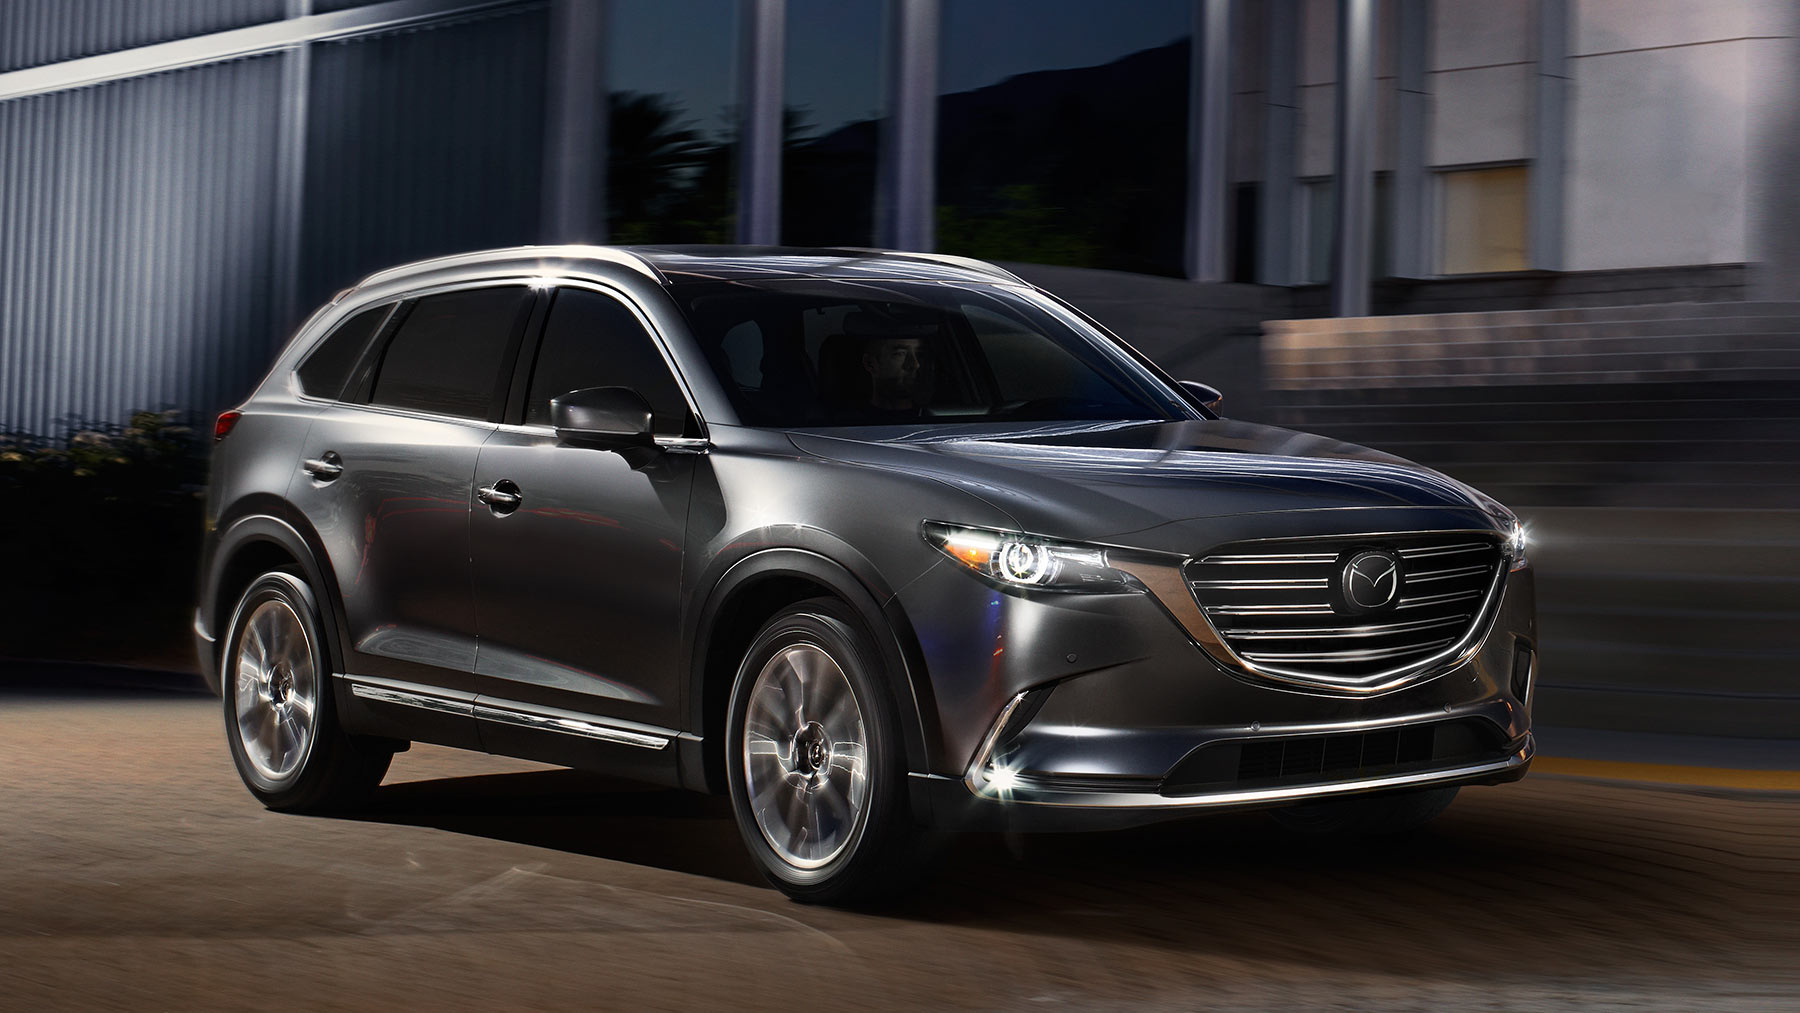 2018 Mazda CX-9 Overview - The News Wheel